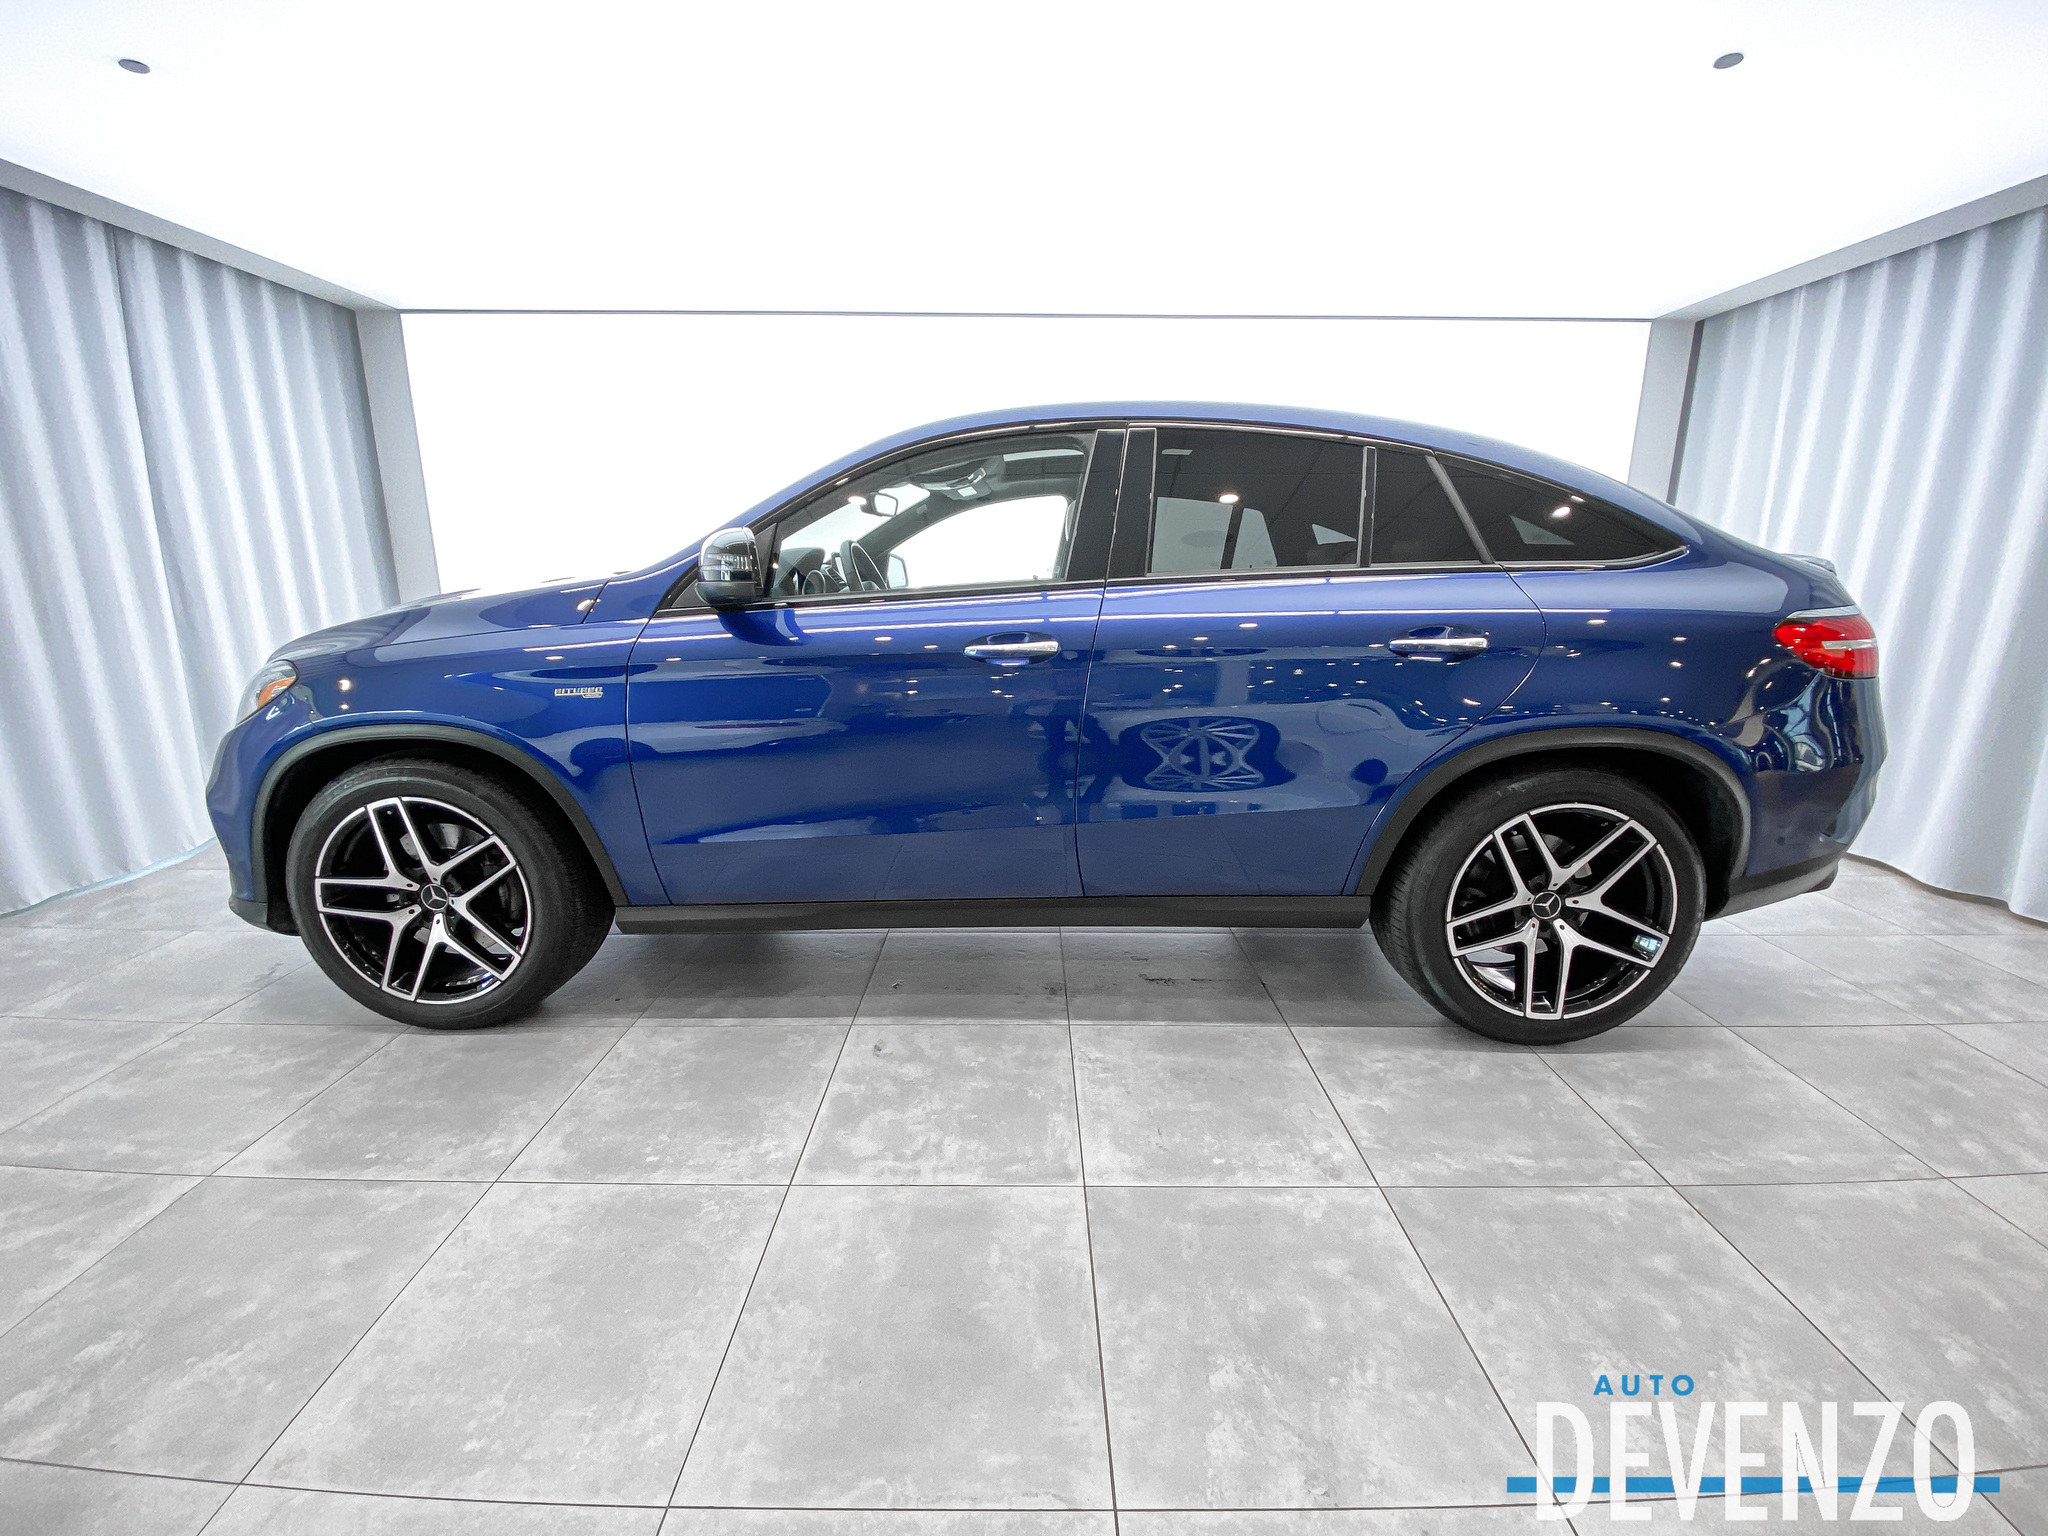 2017 Mercedes-Benz GLE-Class AMG GLE43 4MATIC Coupe DESIGNO / NIGHT complet